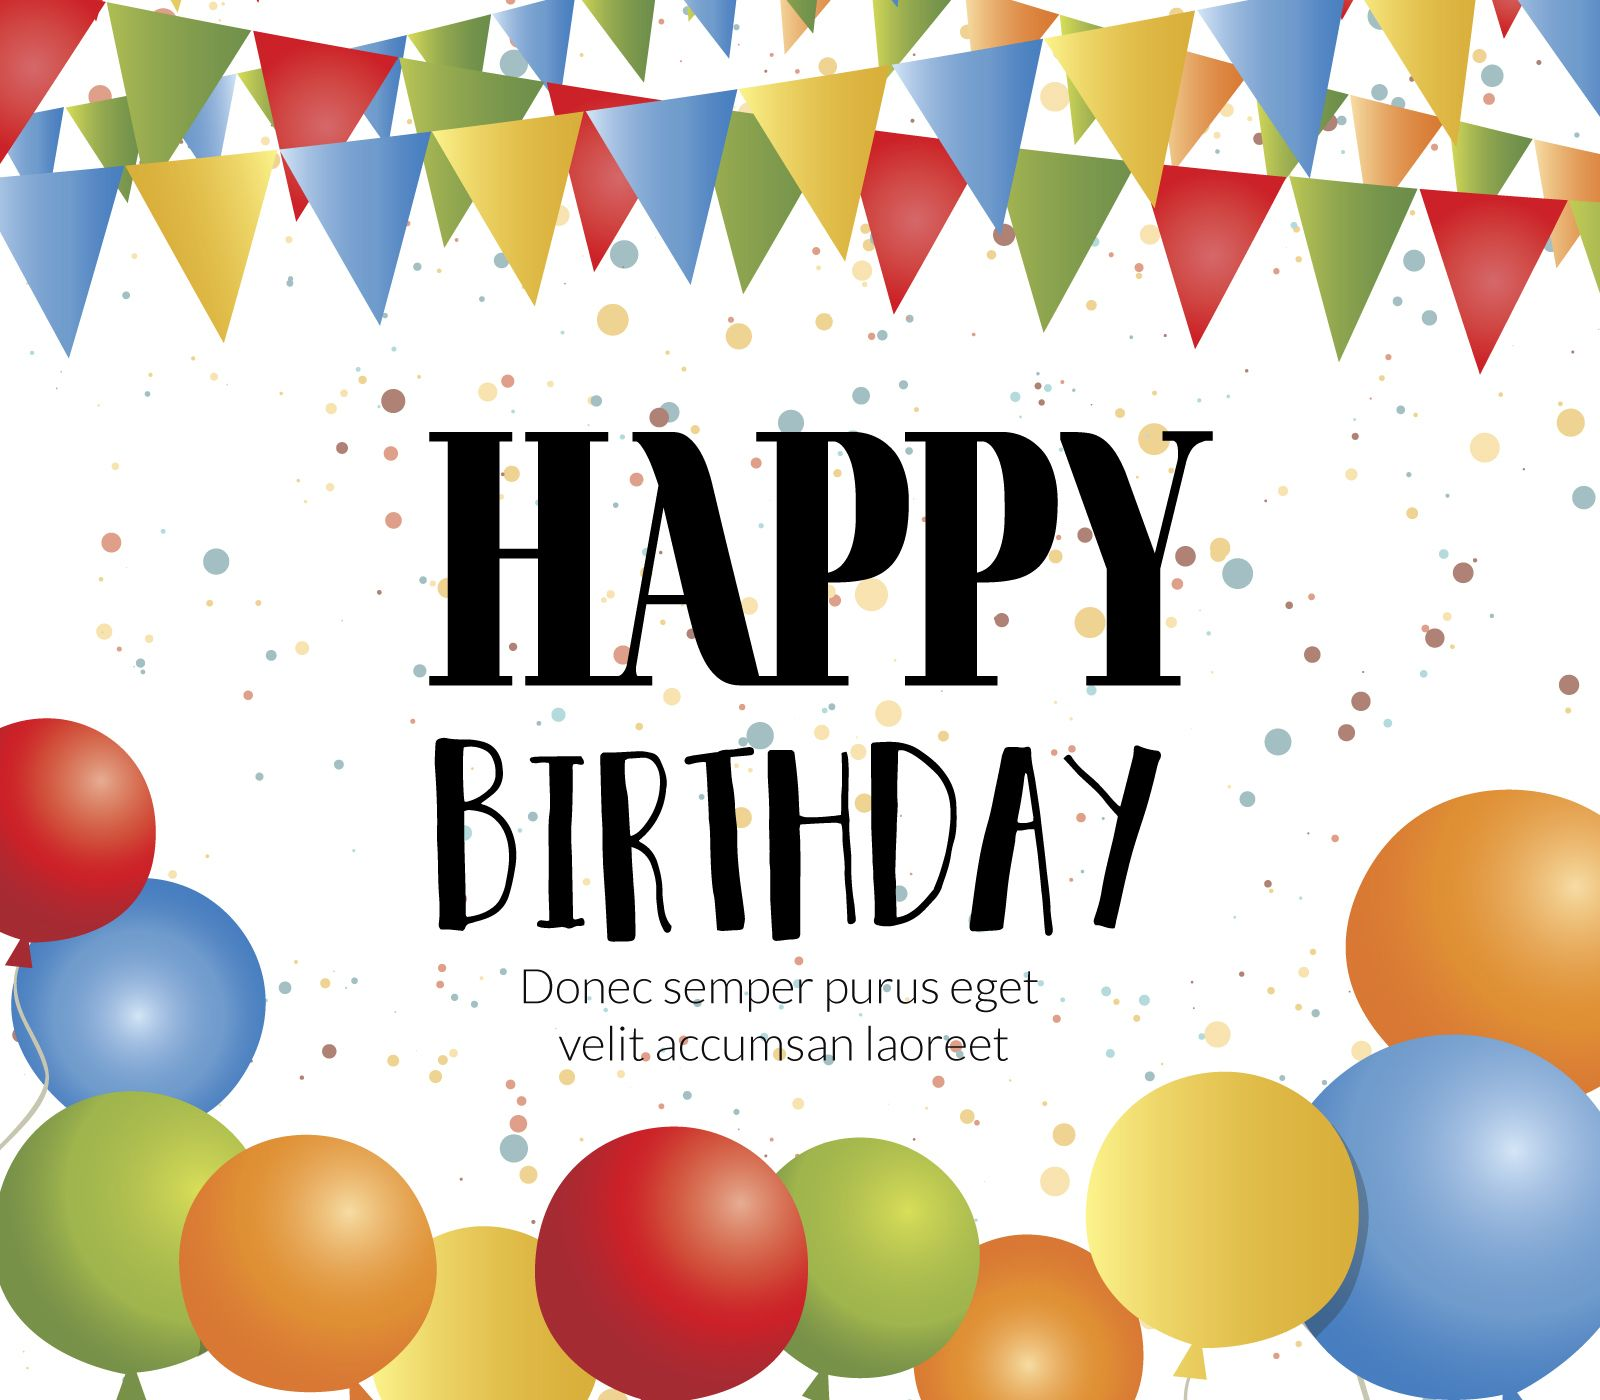 Happy birthday card maker editable design download large image 1600x1400px alramifo Images